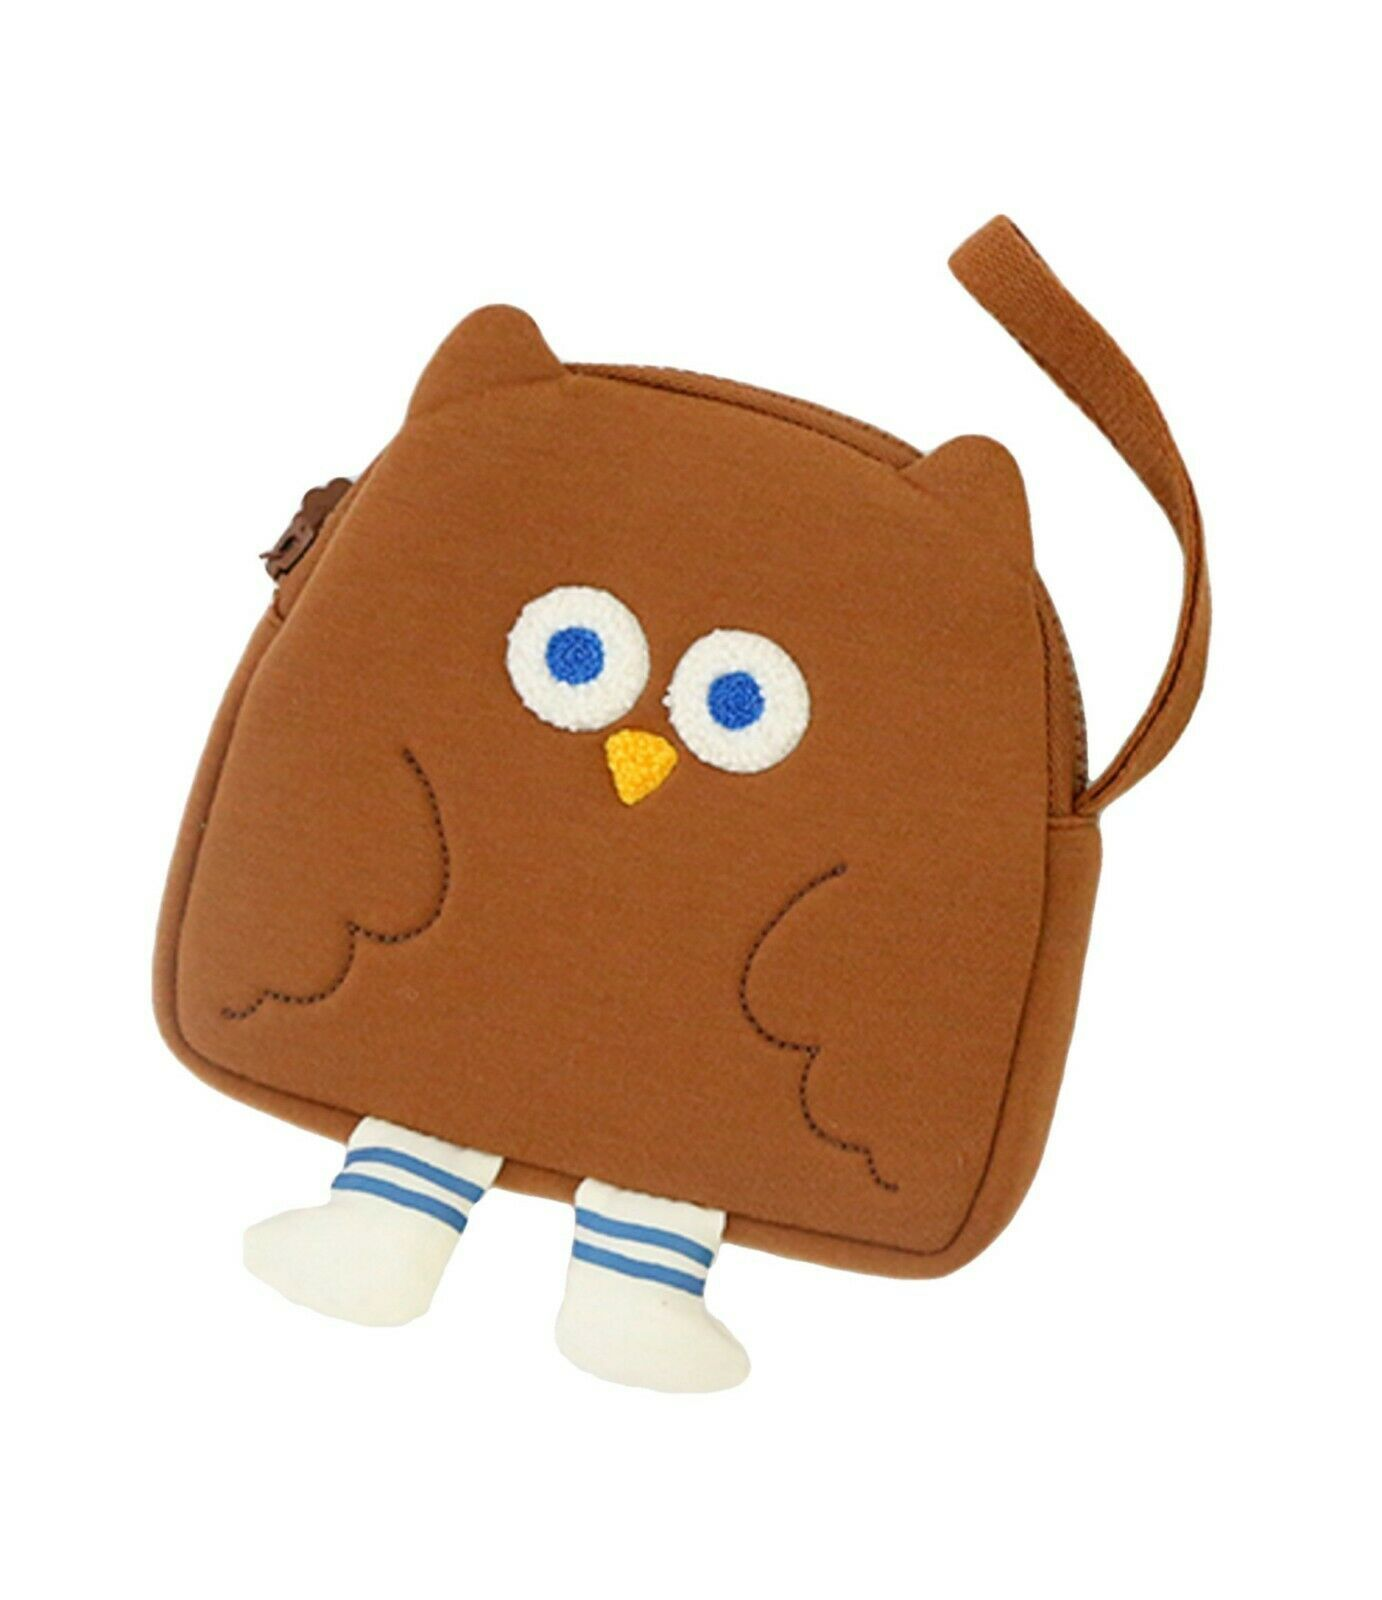 Brunch Brother Flying Owl Pouch Cosmetic Bag Case Organizer (Brown)